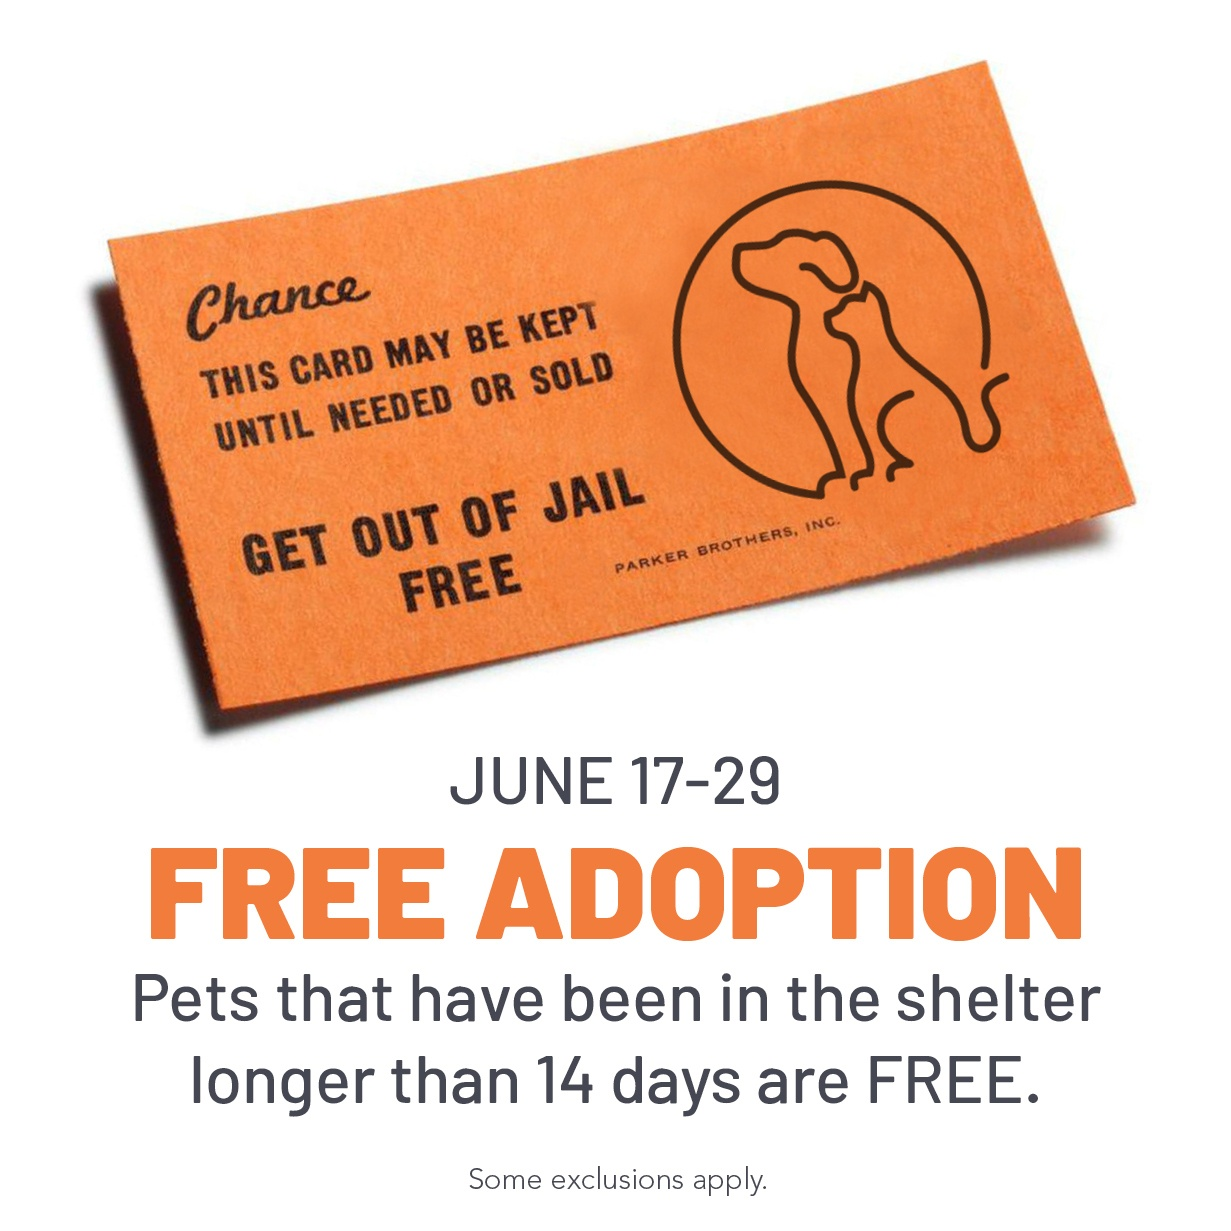 Get Out Of Jail Freeplaying Petnopoly At Animal Services - City - Get Out Of Jail Free Card Printable